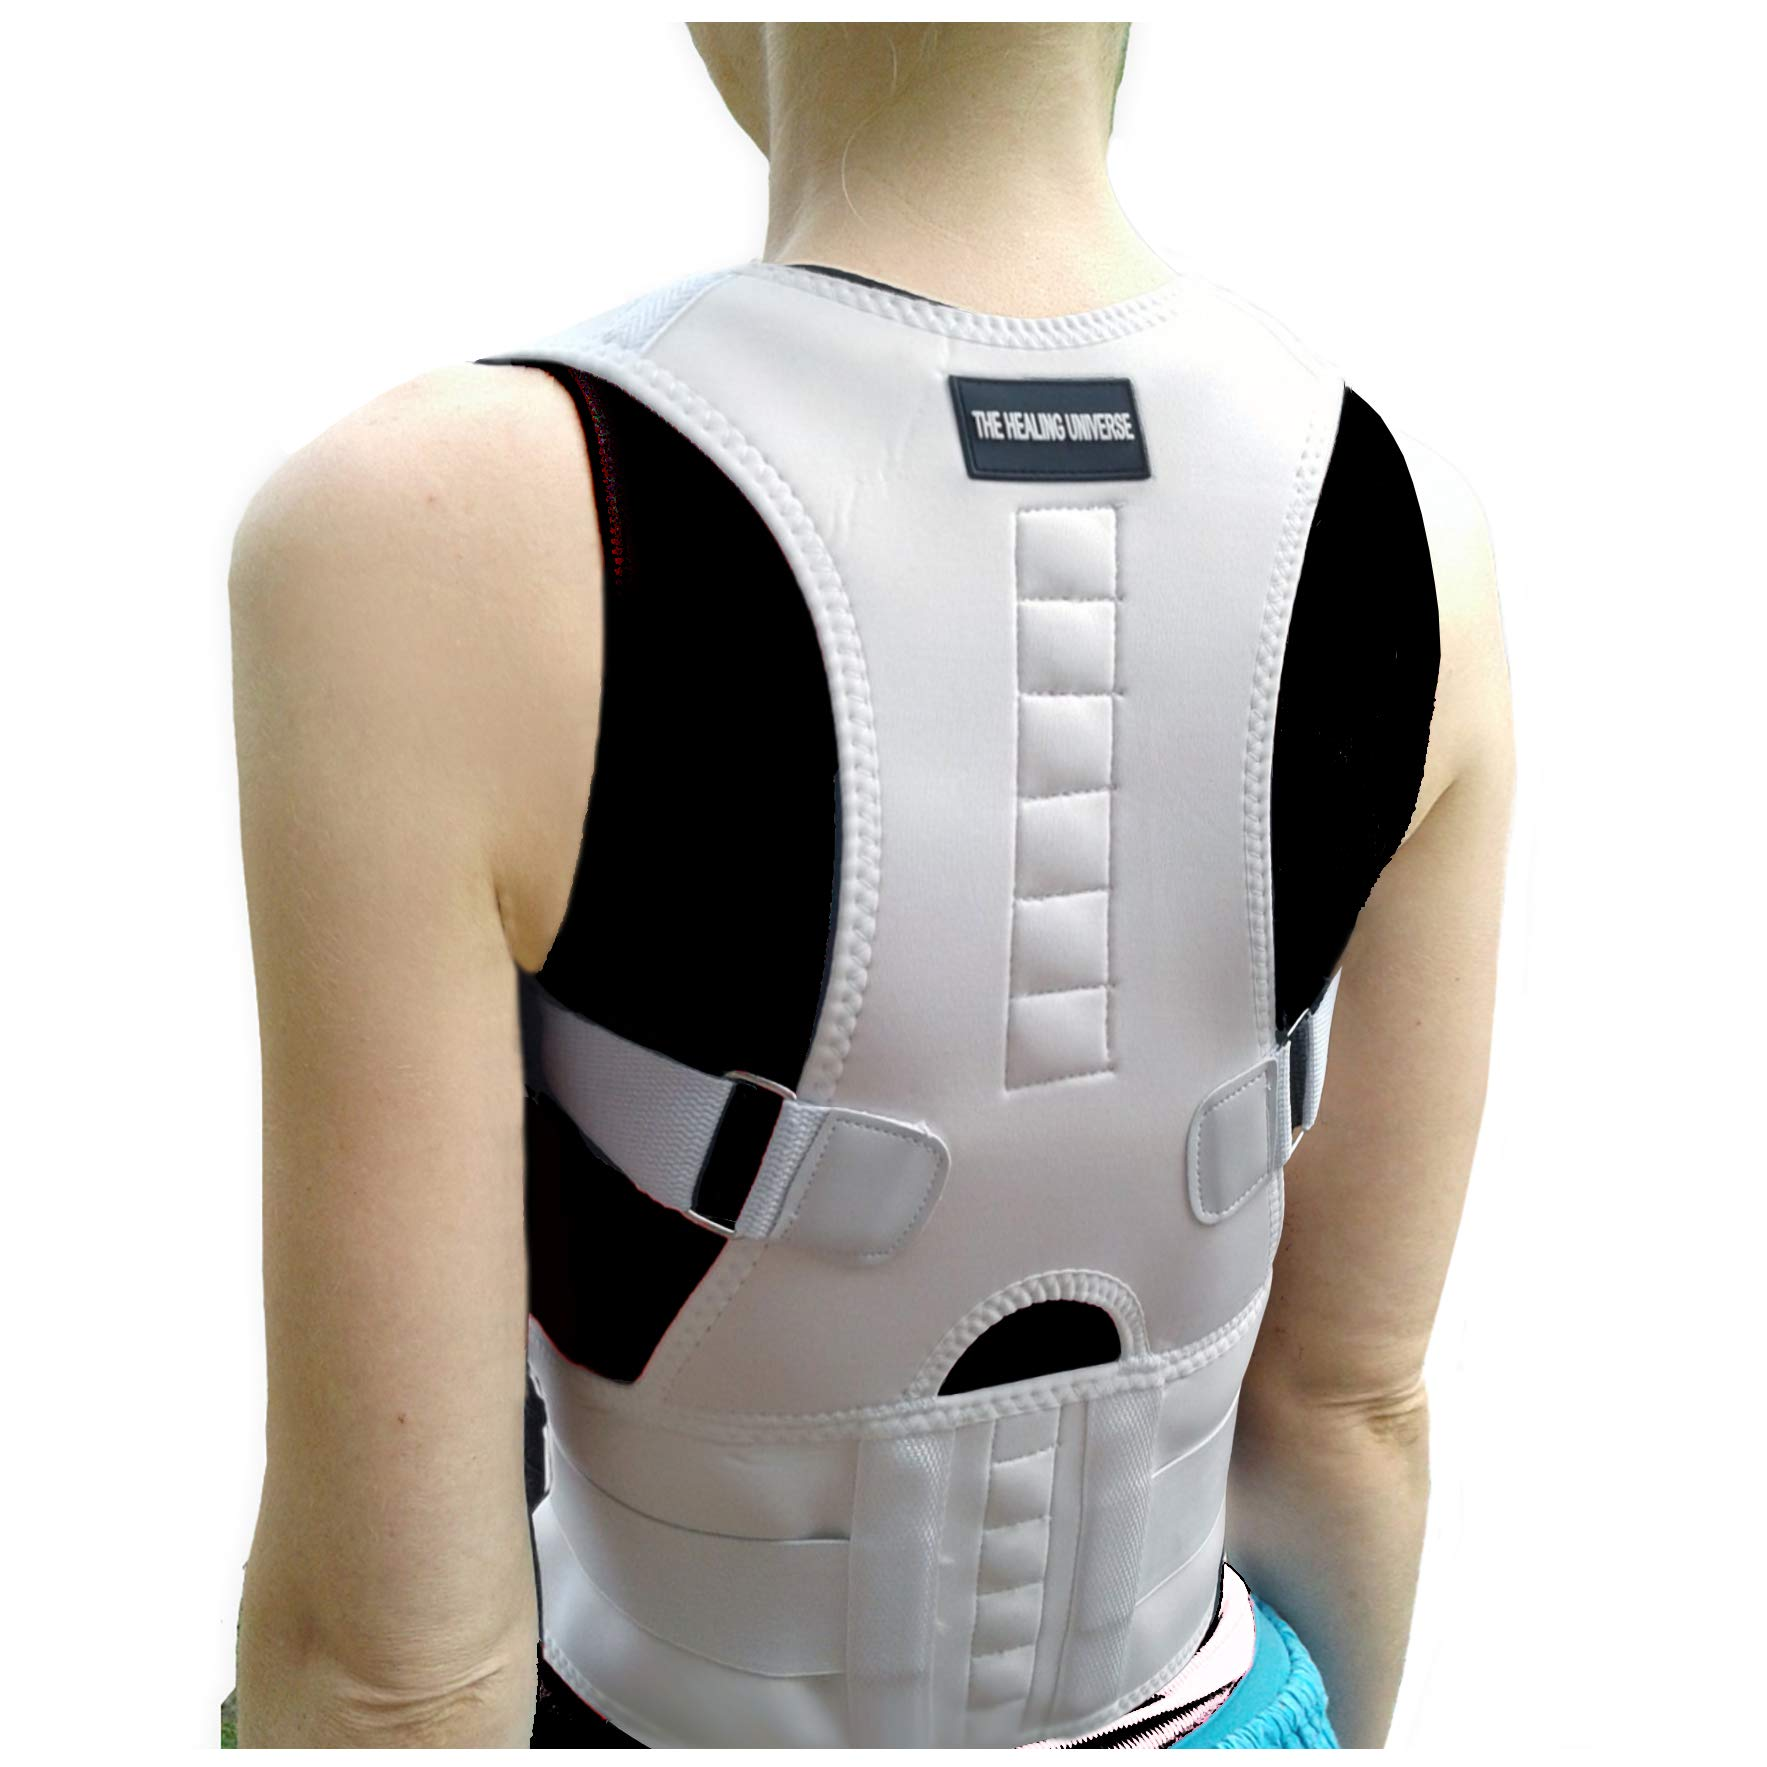 The Healing Universe Medical Back Posture Corrector - Thoracic & Lumbar Back Brace - Best Kyphosis Brace w Magnets - Full Spine and Back Pain Relief